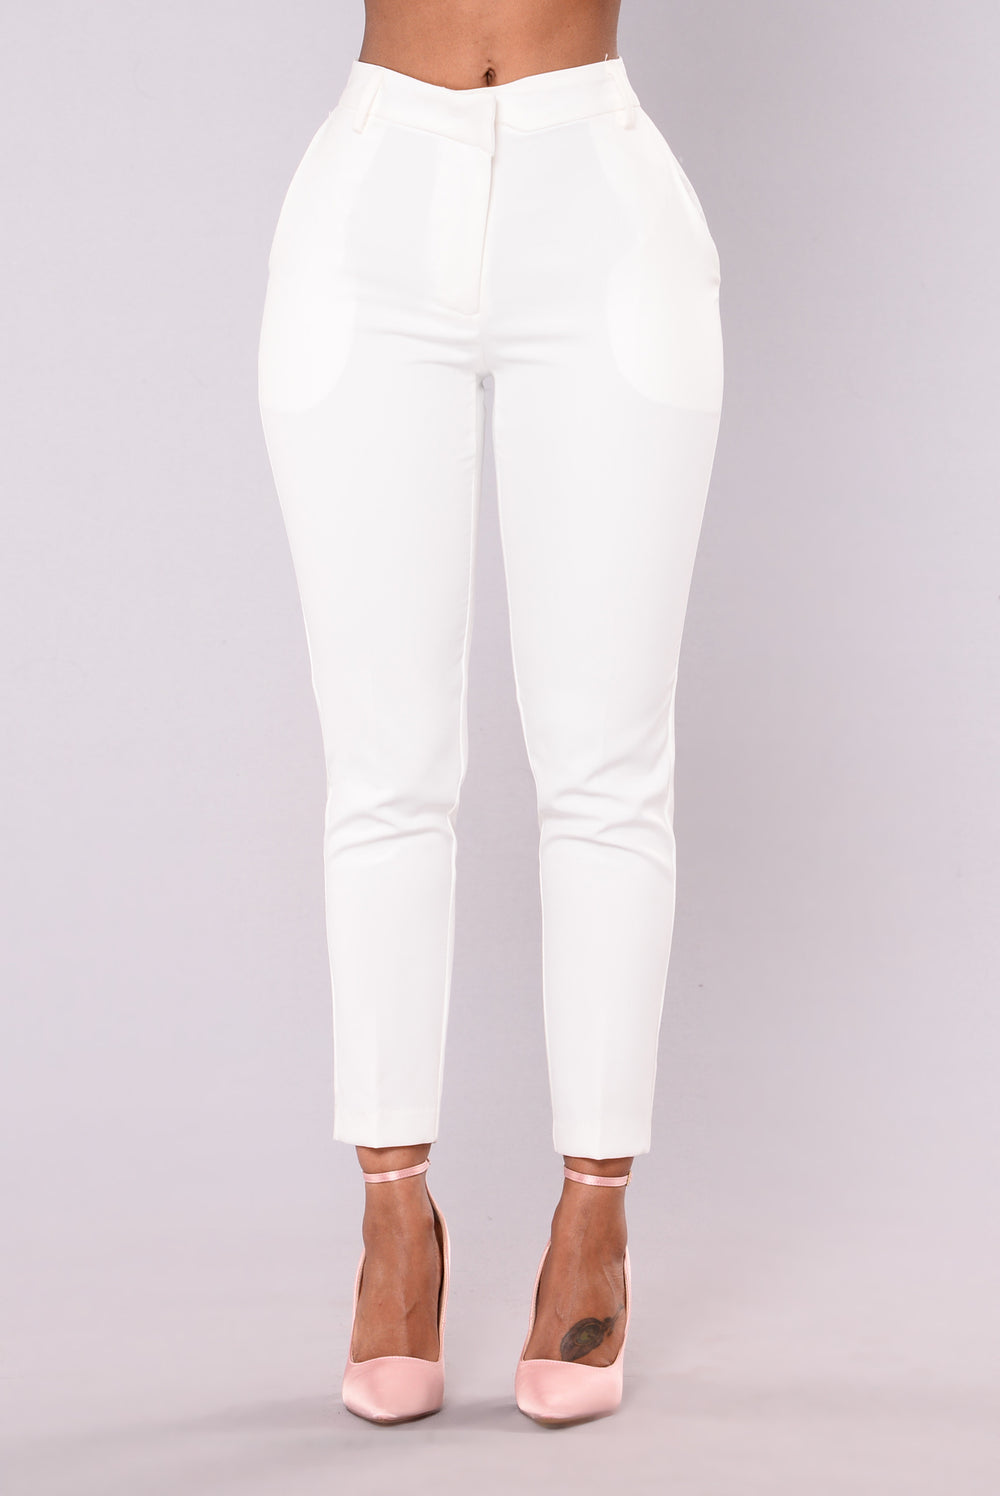 Cassey Pleated Pants - White